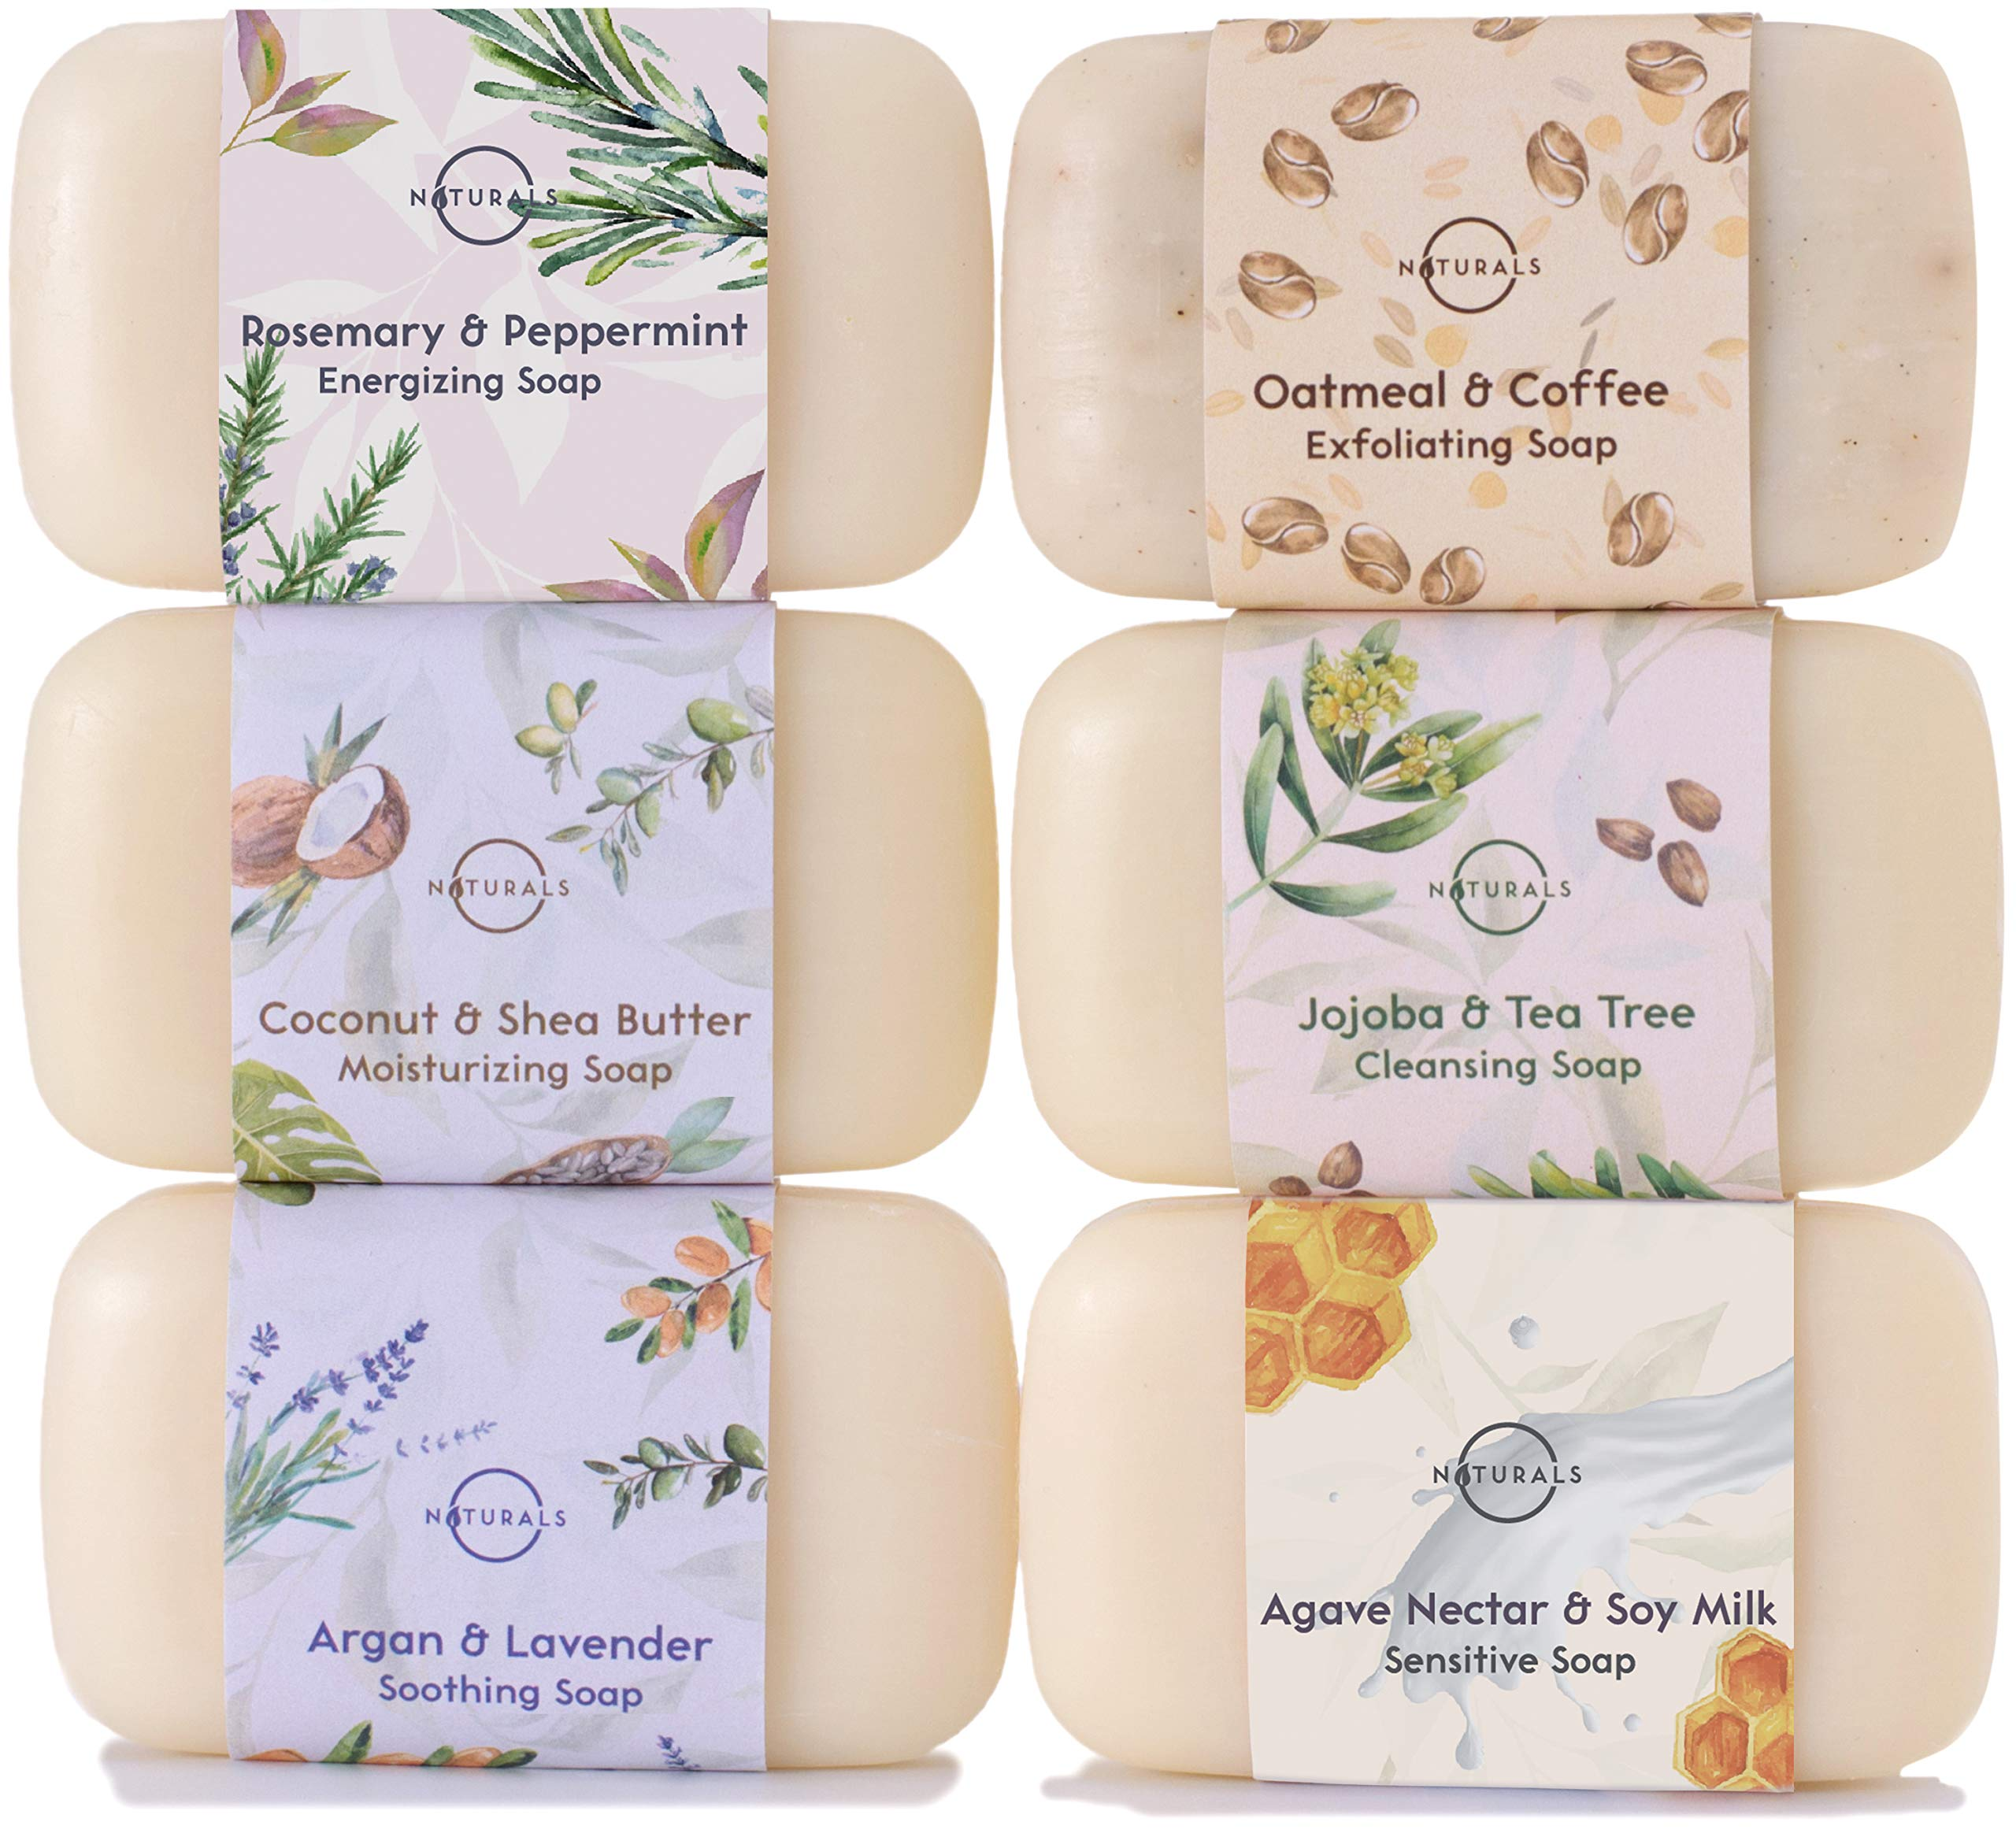 O Naturals 6 Piece Moisturizing Body Wash Bar Soap Collection. 100% Natural Made w/Organic Ingredients & Therapeutic Essential Oils. Face & Hands. Vegan Triple Milled. Gift Set. For Women & Men 4 Oz by O Naturals